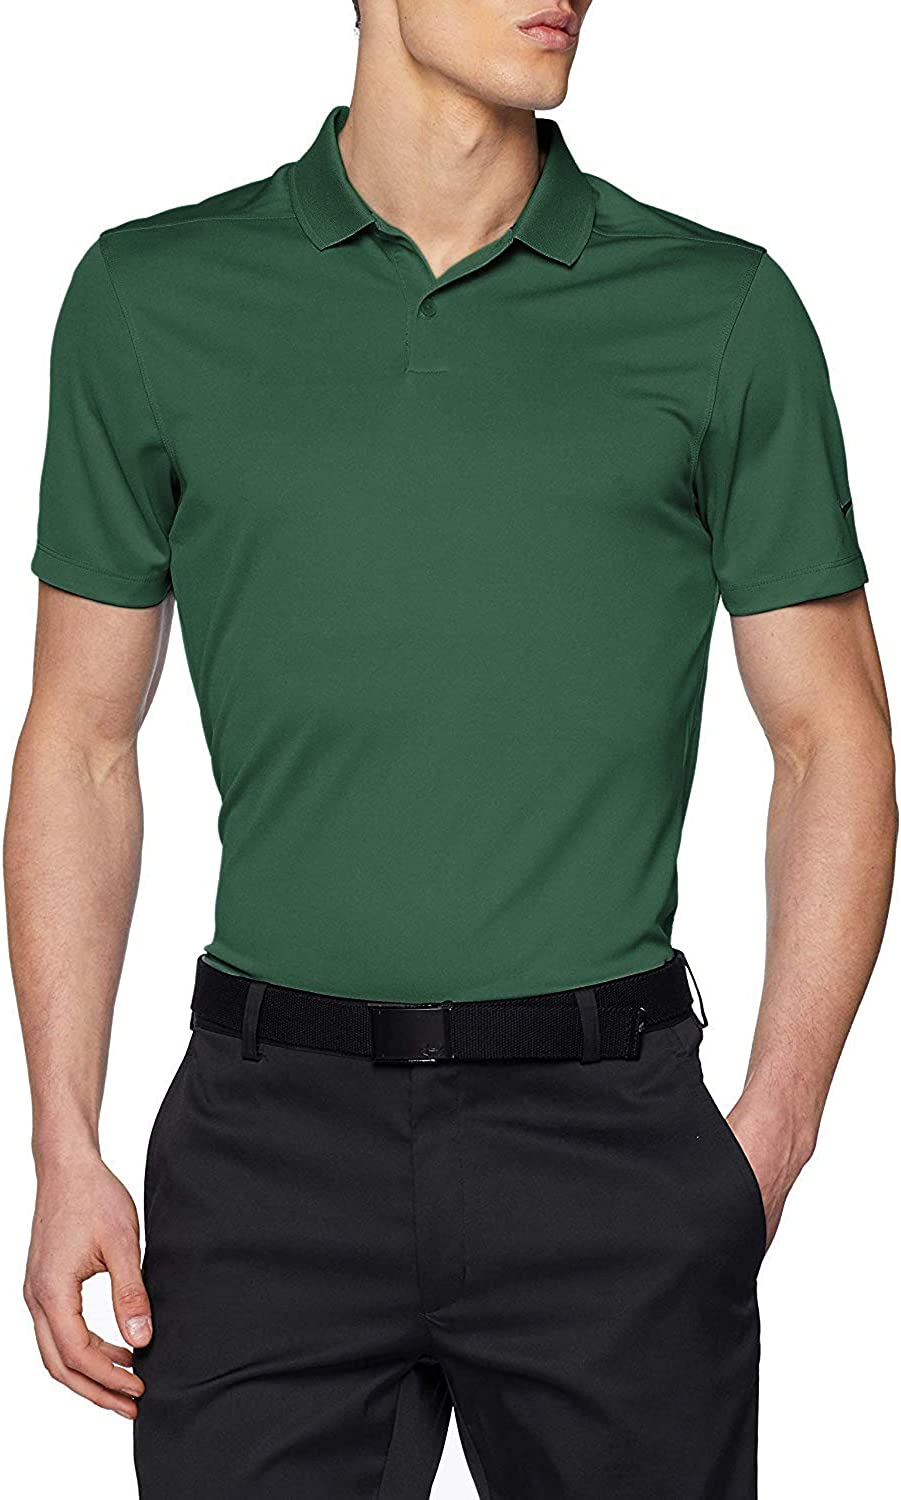 Nike Men's Dry Victory Solid Polo Golf Shirt